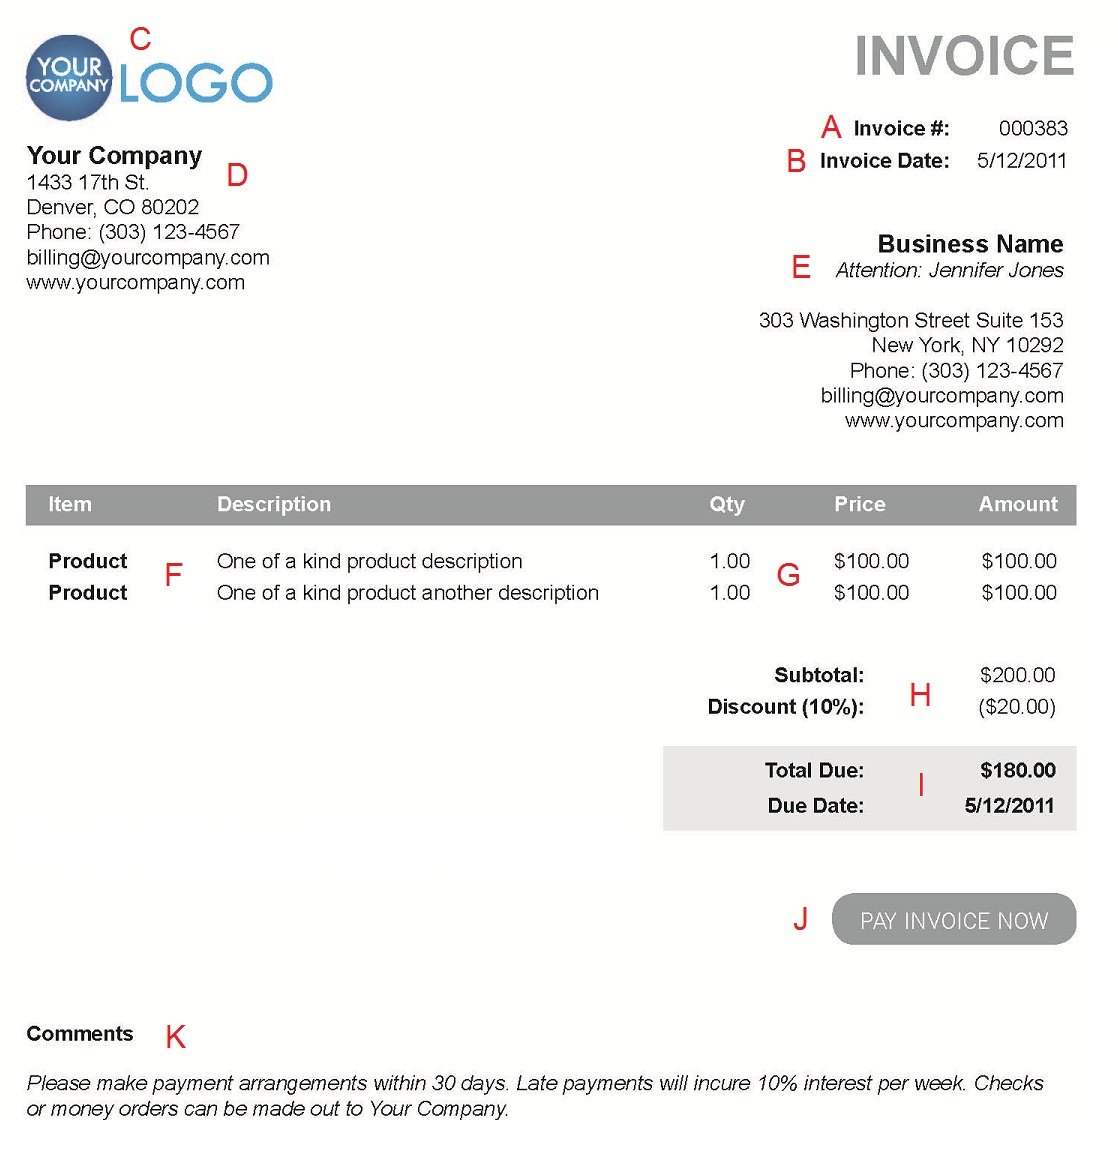 Coolmathgamesus  Fascinating The  Different Sections Of An Electronic Payment Invoice With Great A  With Delightful Receipt For Selling A Car Also Hamburger Receipts In Addition Receipts For Reimbursement And Chilli Receipts As Well As Cash Deposit Receipt Additionally Warehouse Receipt Template From Paysimplecom With Coolmathgamesus  Great The  Different Sections Of An Electronic Payment Invoice With Delightful A  And Fascinating Receipt For Selling A Car Also Hamburger Receipts In Addition Receipts For Reimbursement From Paysimplecom